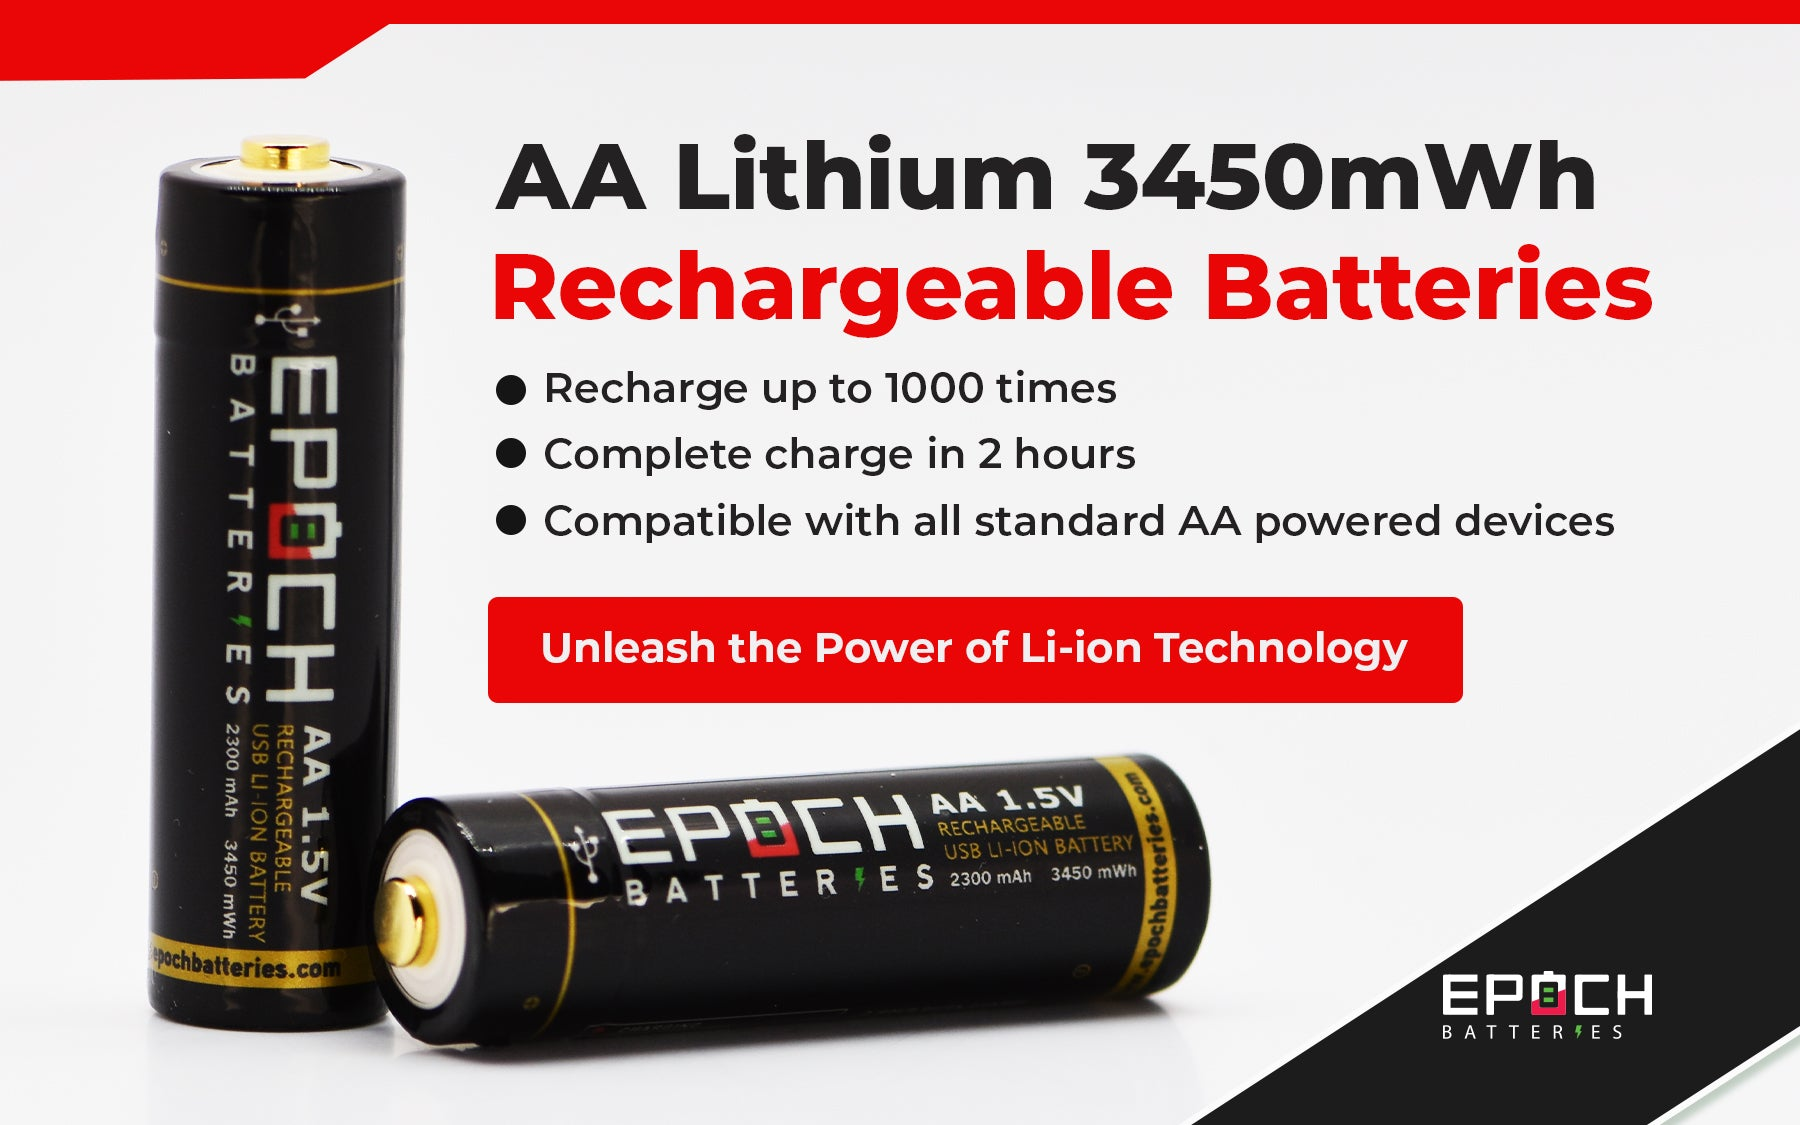 Epoch AA USB Rechargeable battery